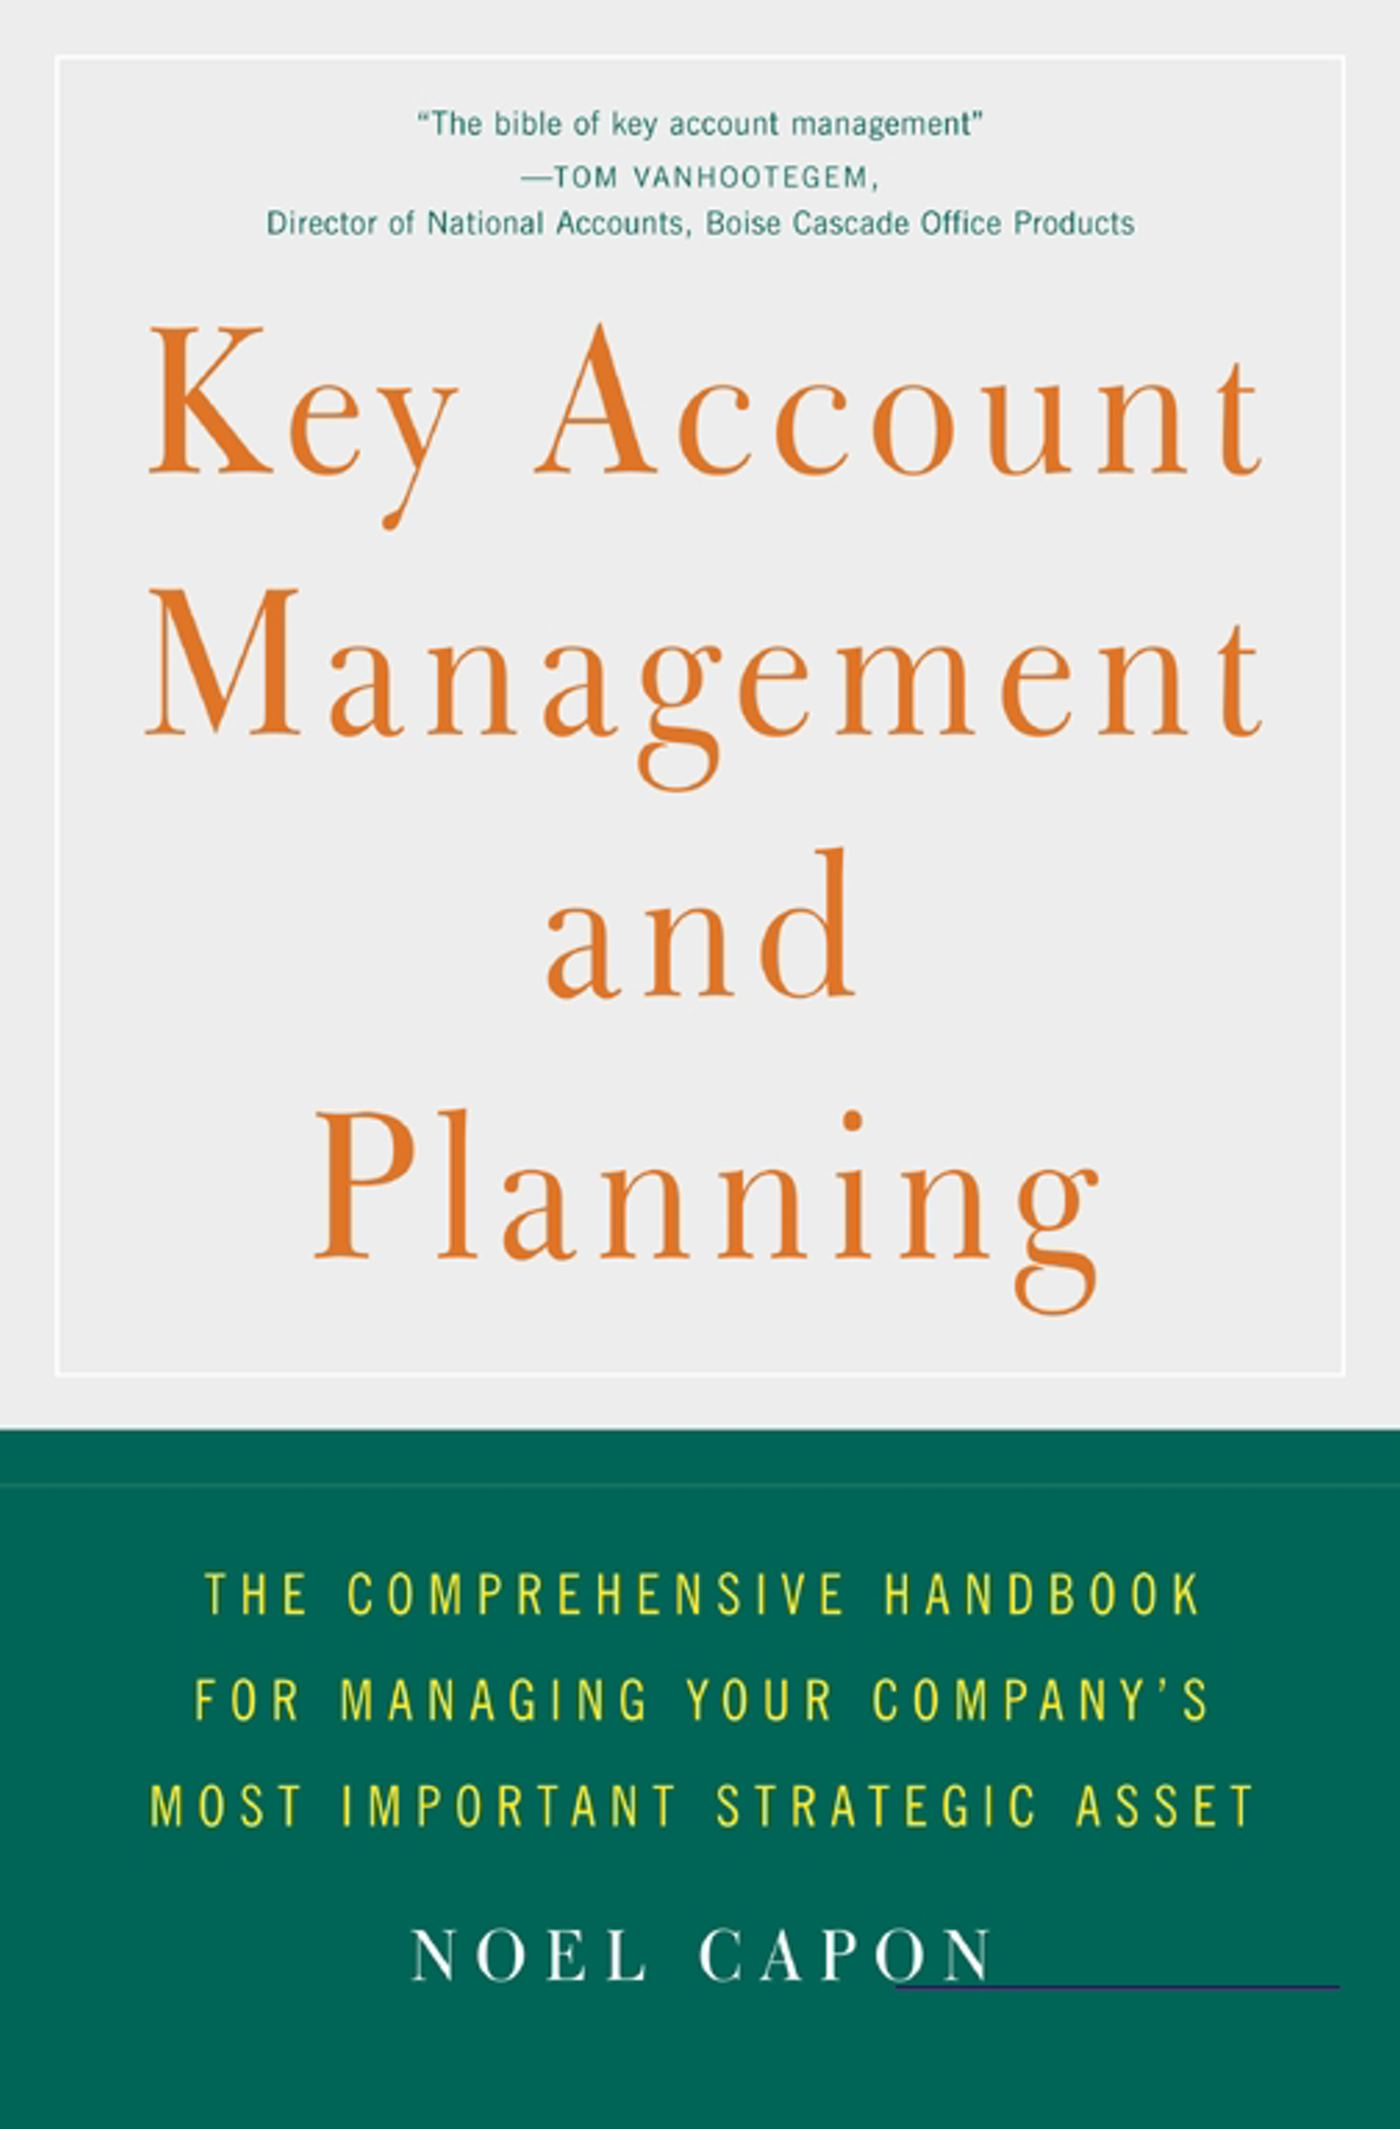 Key account management and planning ebook by noel capon official the comprehensive handbook for managing your companys most important strategic asset fandeluxe